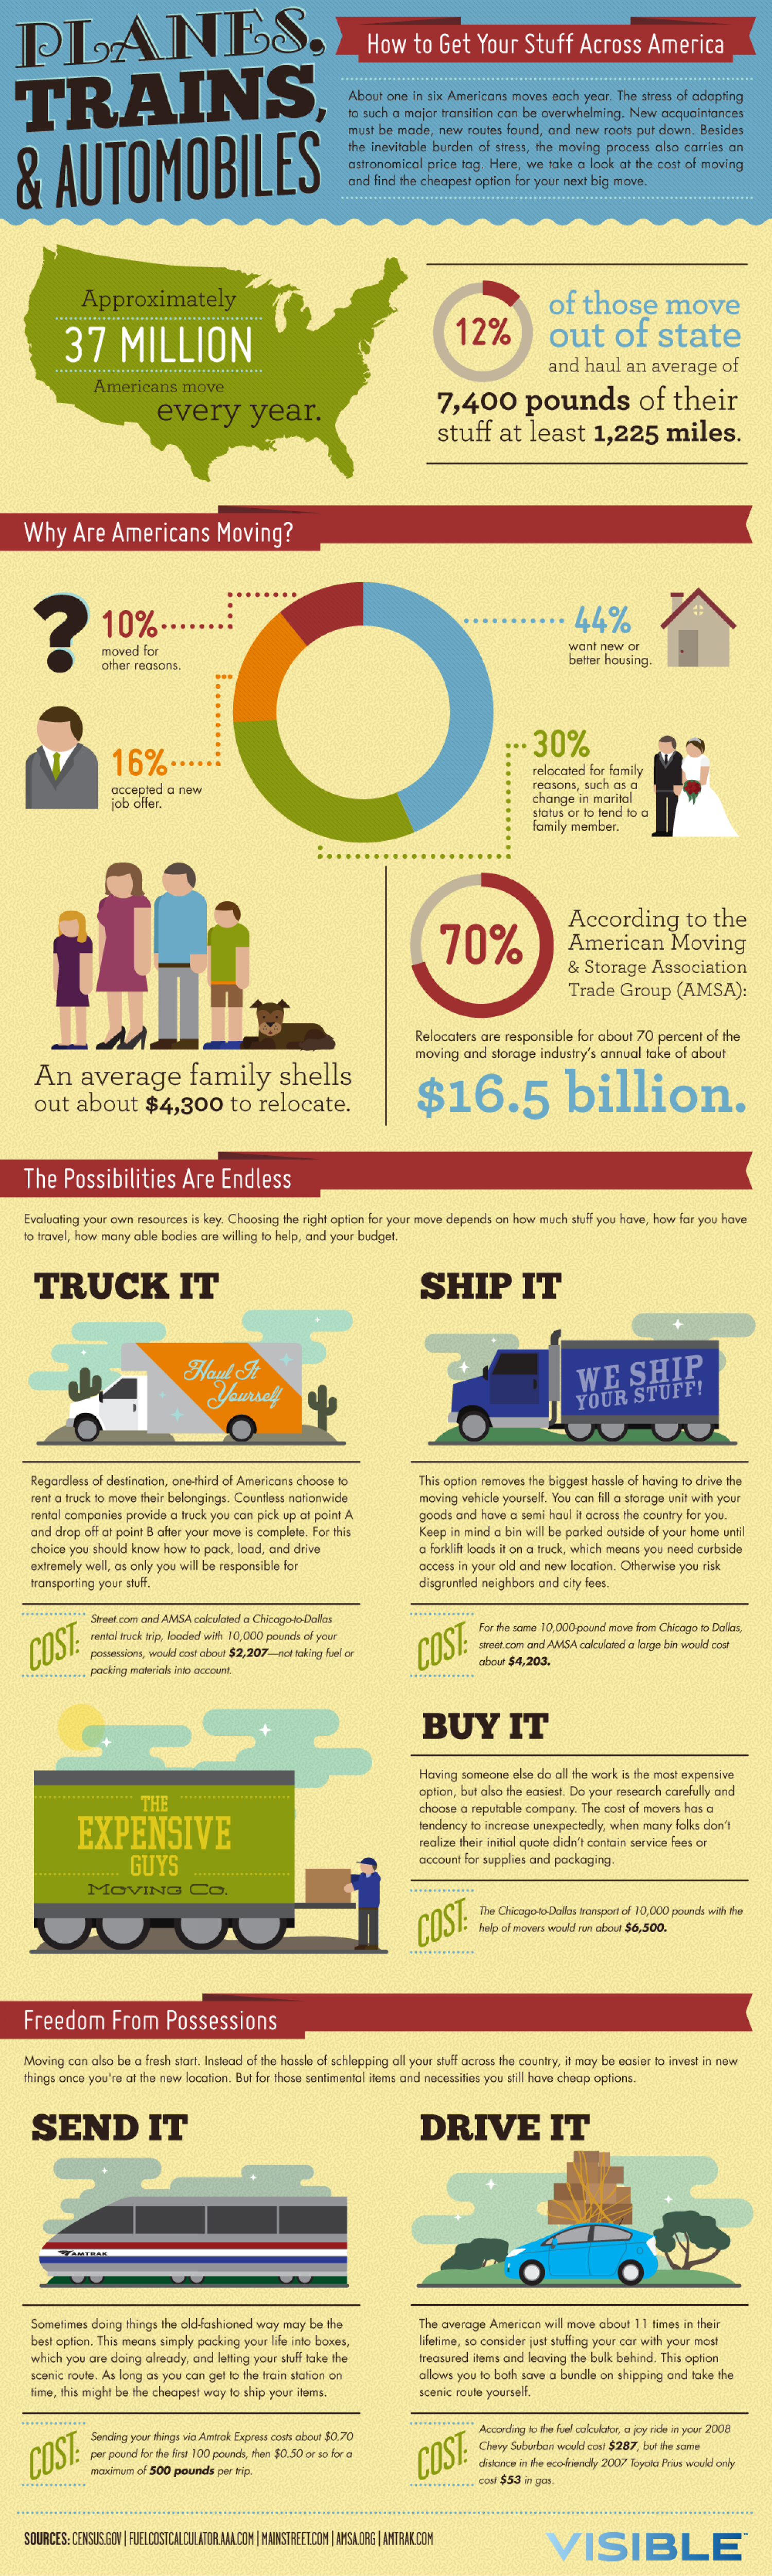 Planes, Trains, & Automobiles Infographic